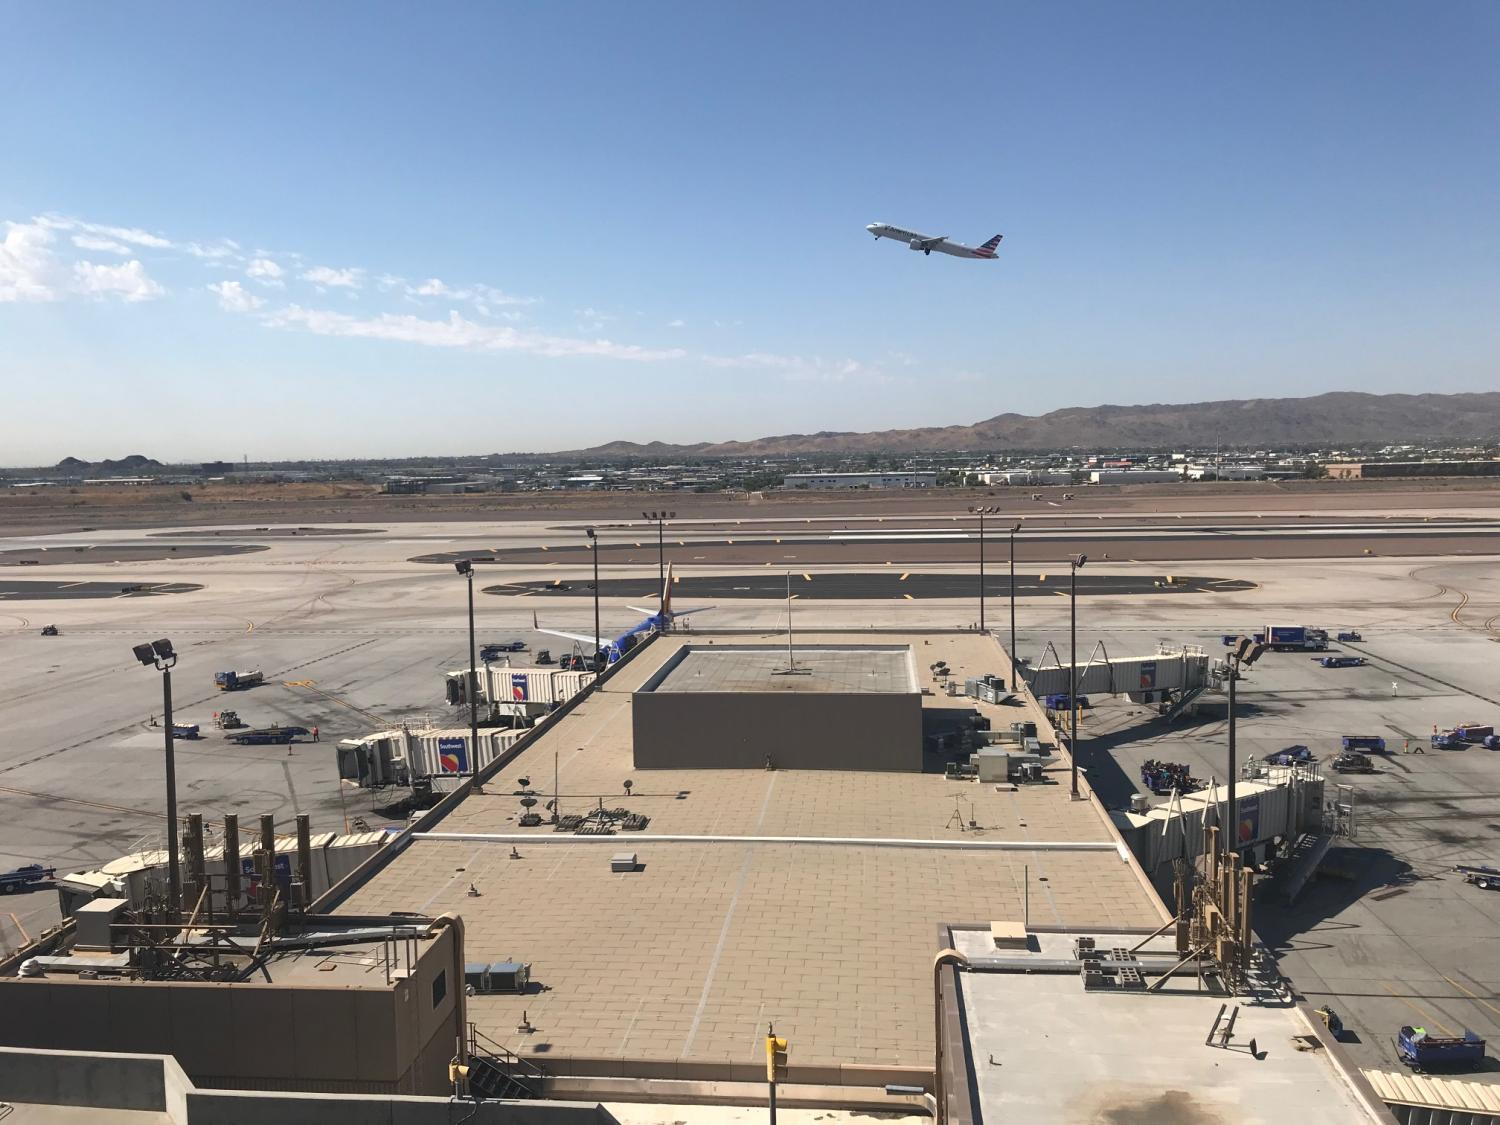 A plane takes off from Phoenix Sky Harbor Airport